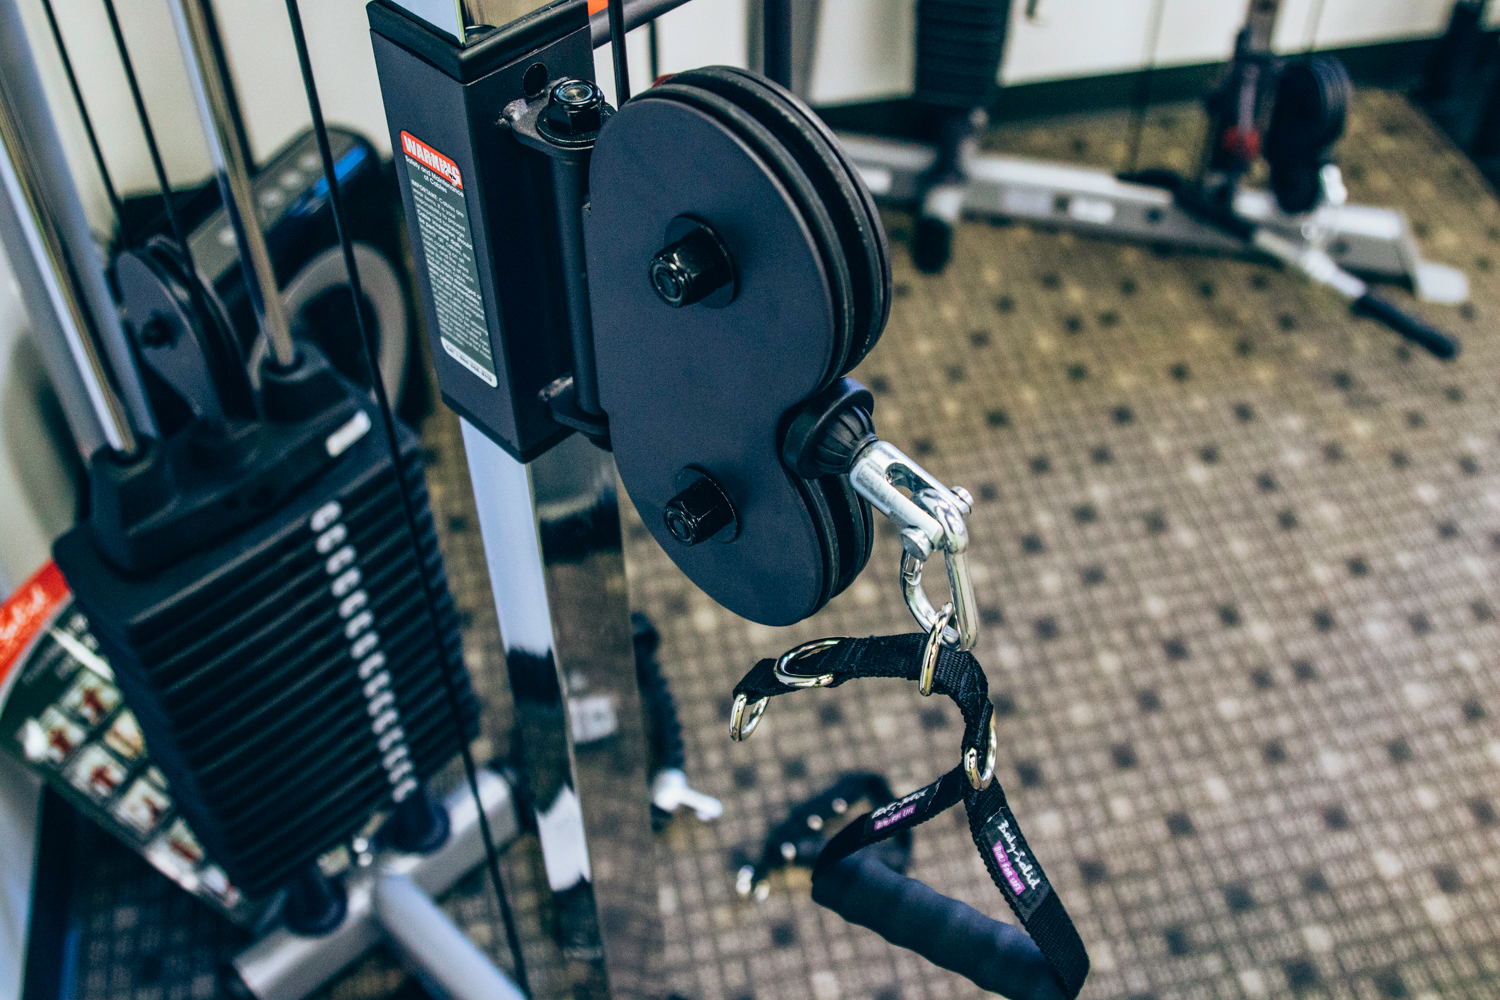 flex5-fitness-personal-training-new-functional-trainer-station-front.jpg